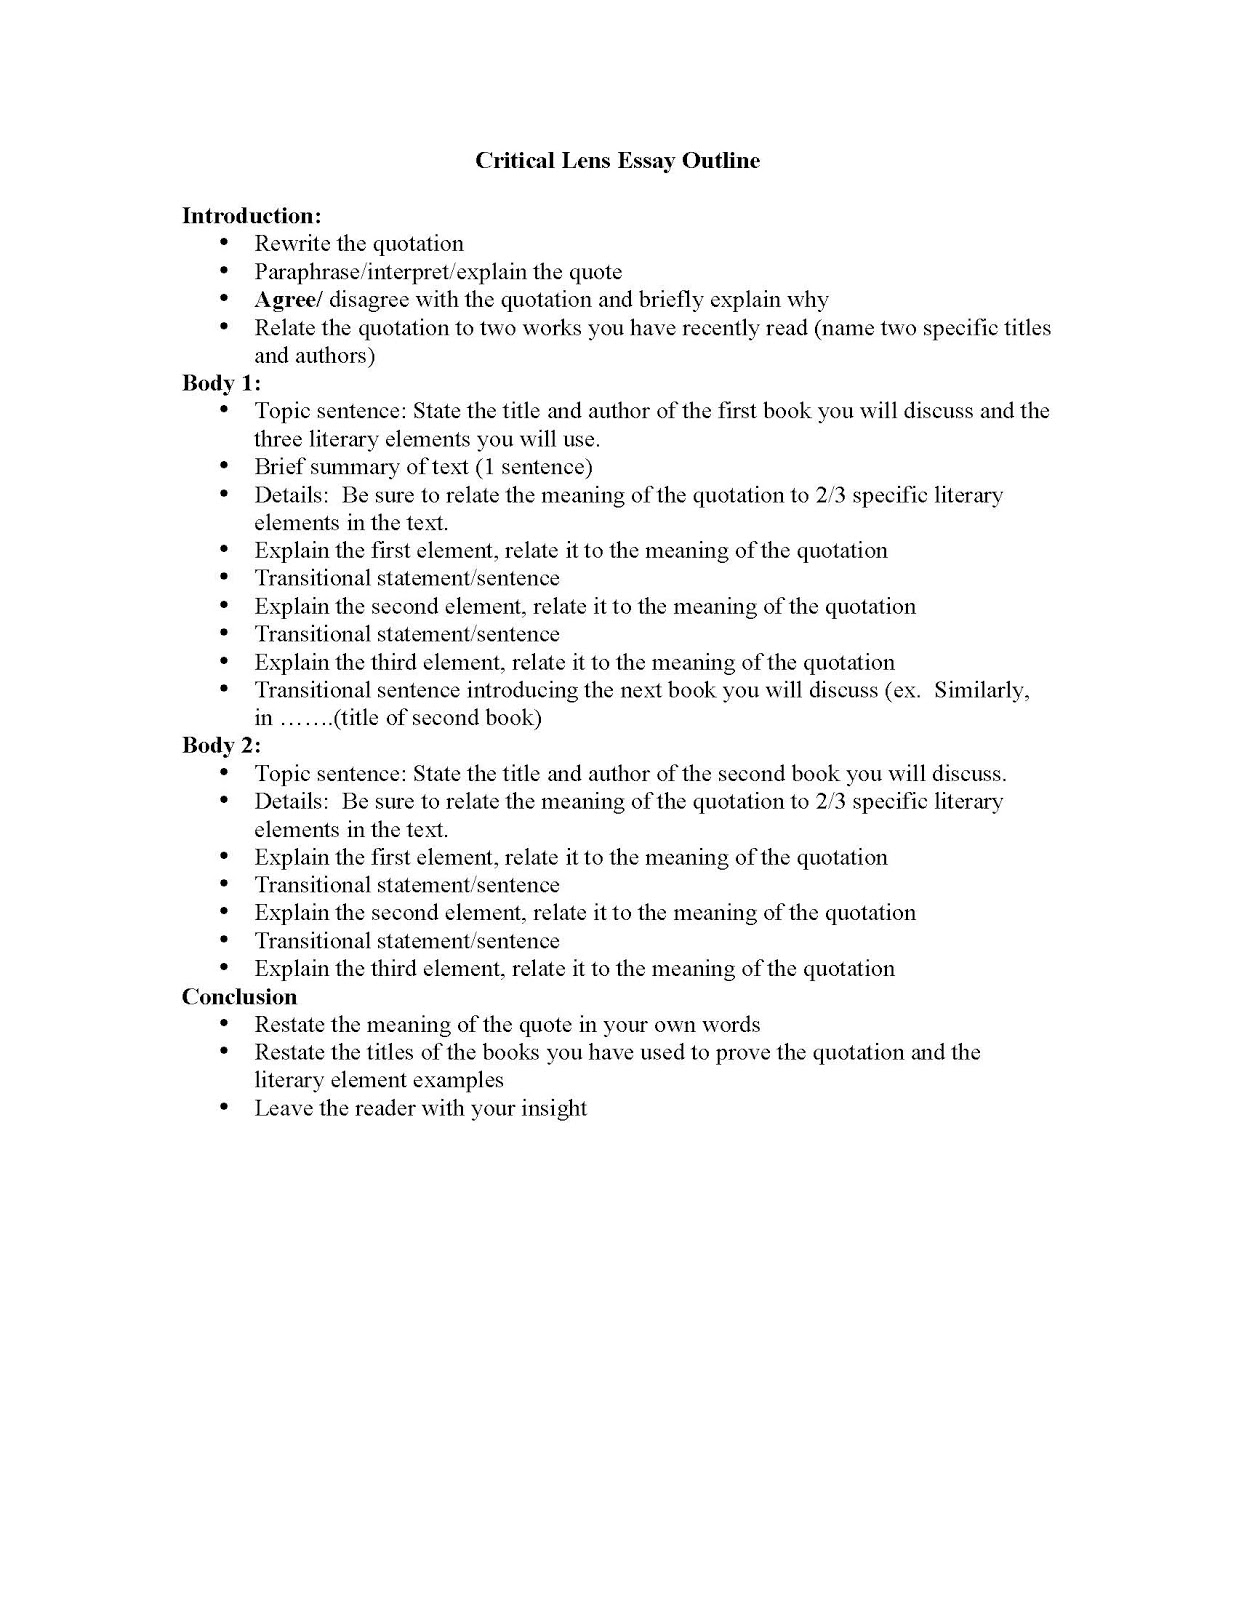 011 Outline For Argumentative Essay Example Criticallensessayoutlineandliterayelements Page 1 Archaicawful On Gun Control Sample Full